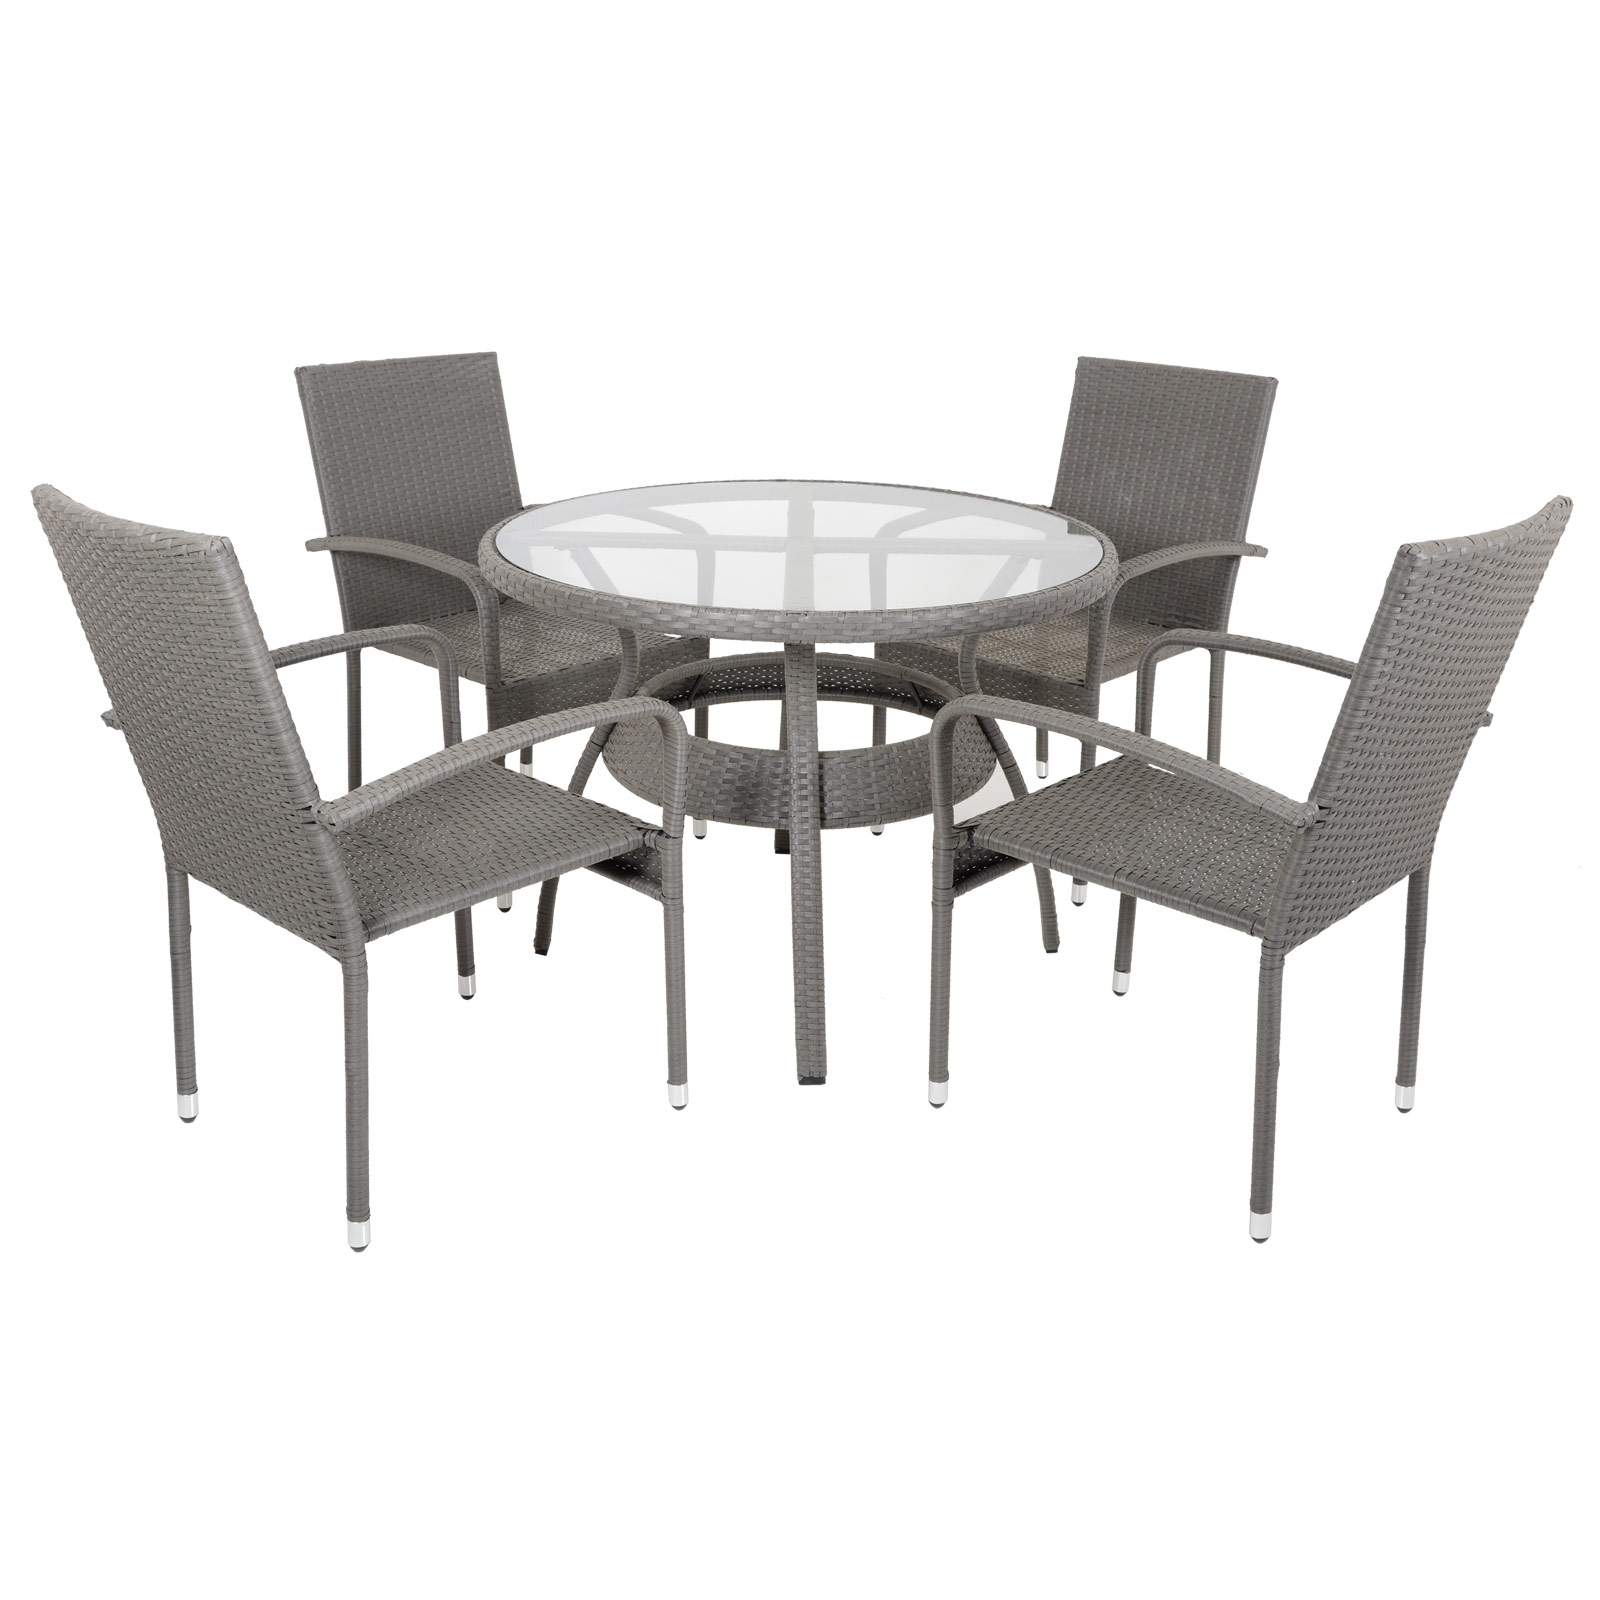 Ravenna Rattan Wicker Aluminium Garden Patio Dining Table